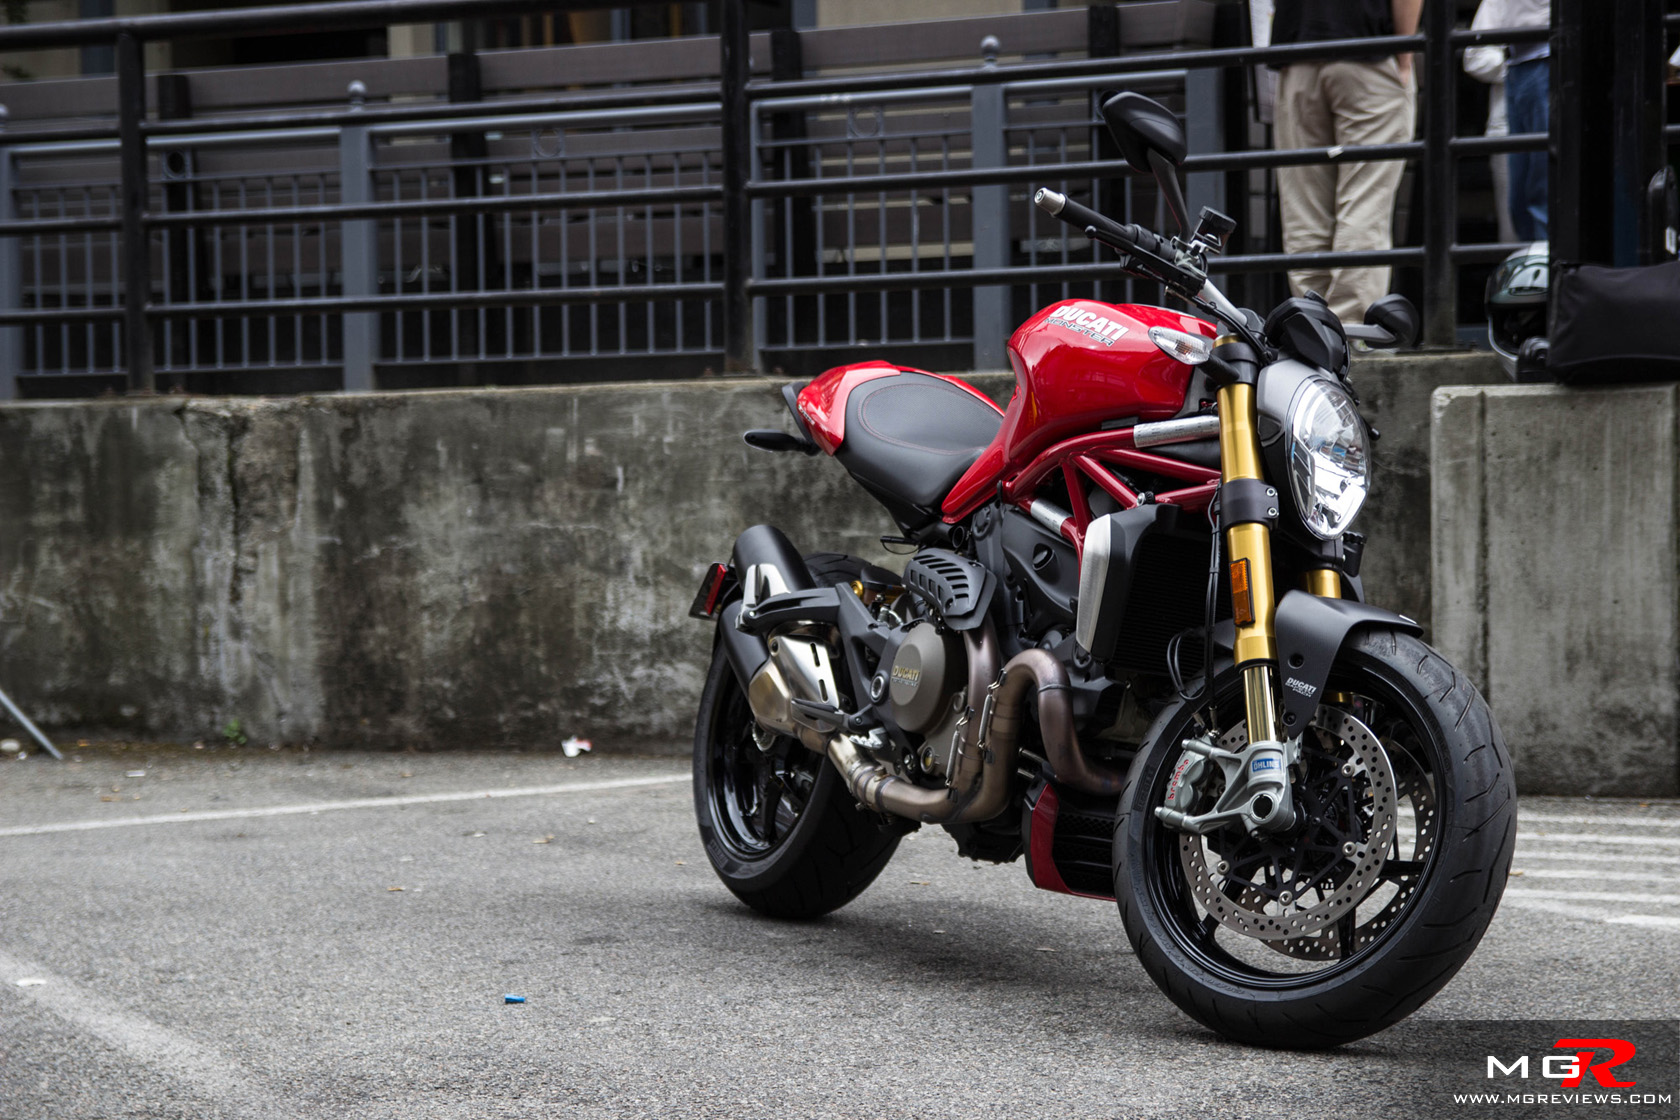 review: 2015 ducati monster 1200s – m.g.reviews